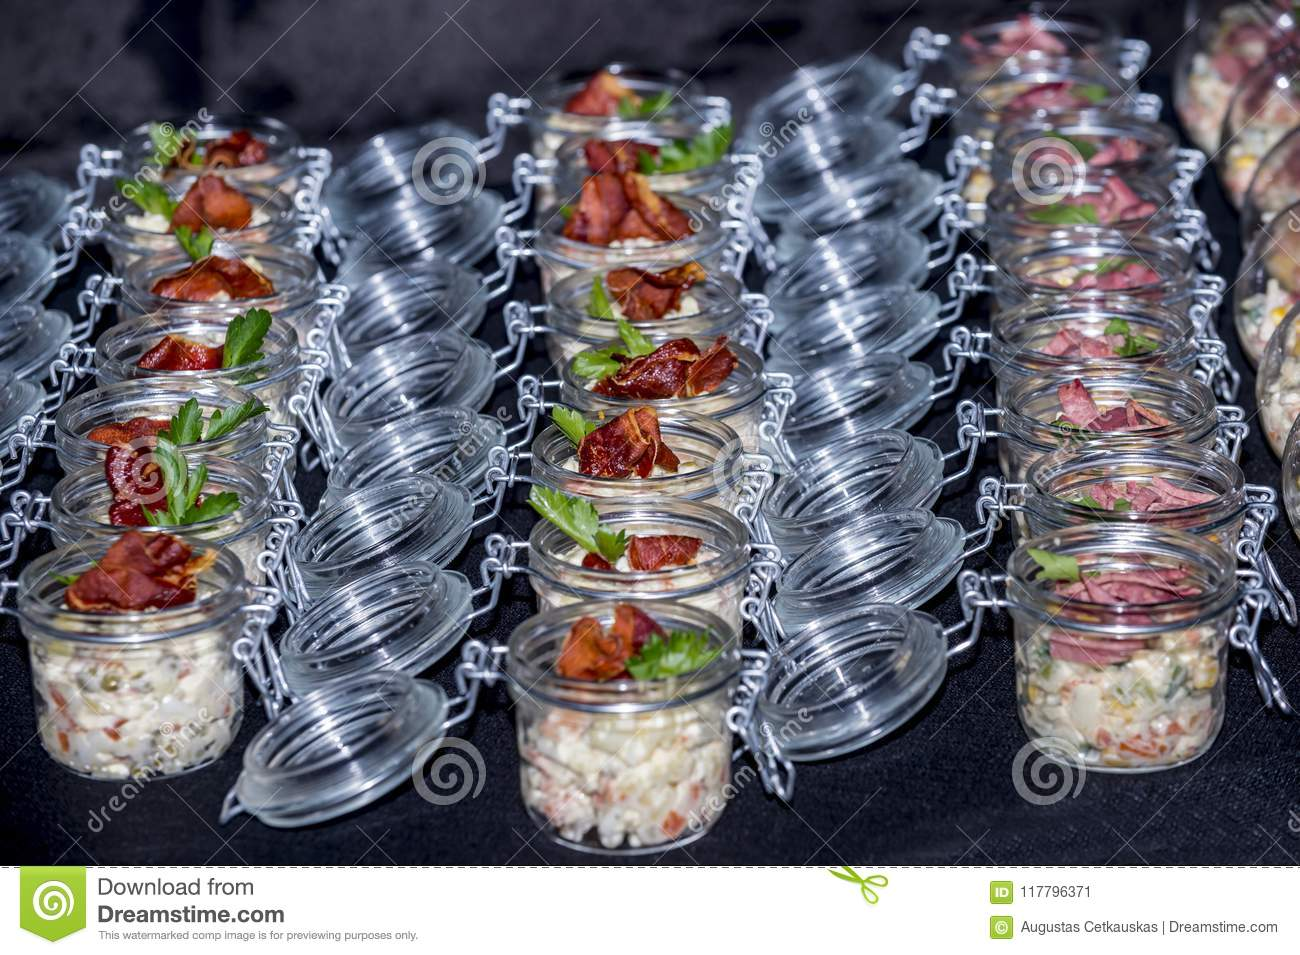 Salads with meat in a glass jar